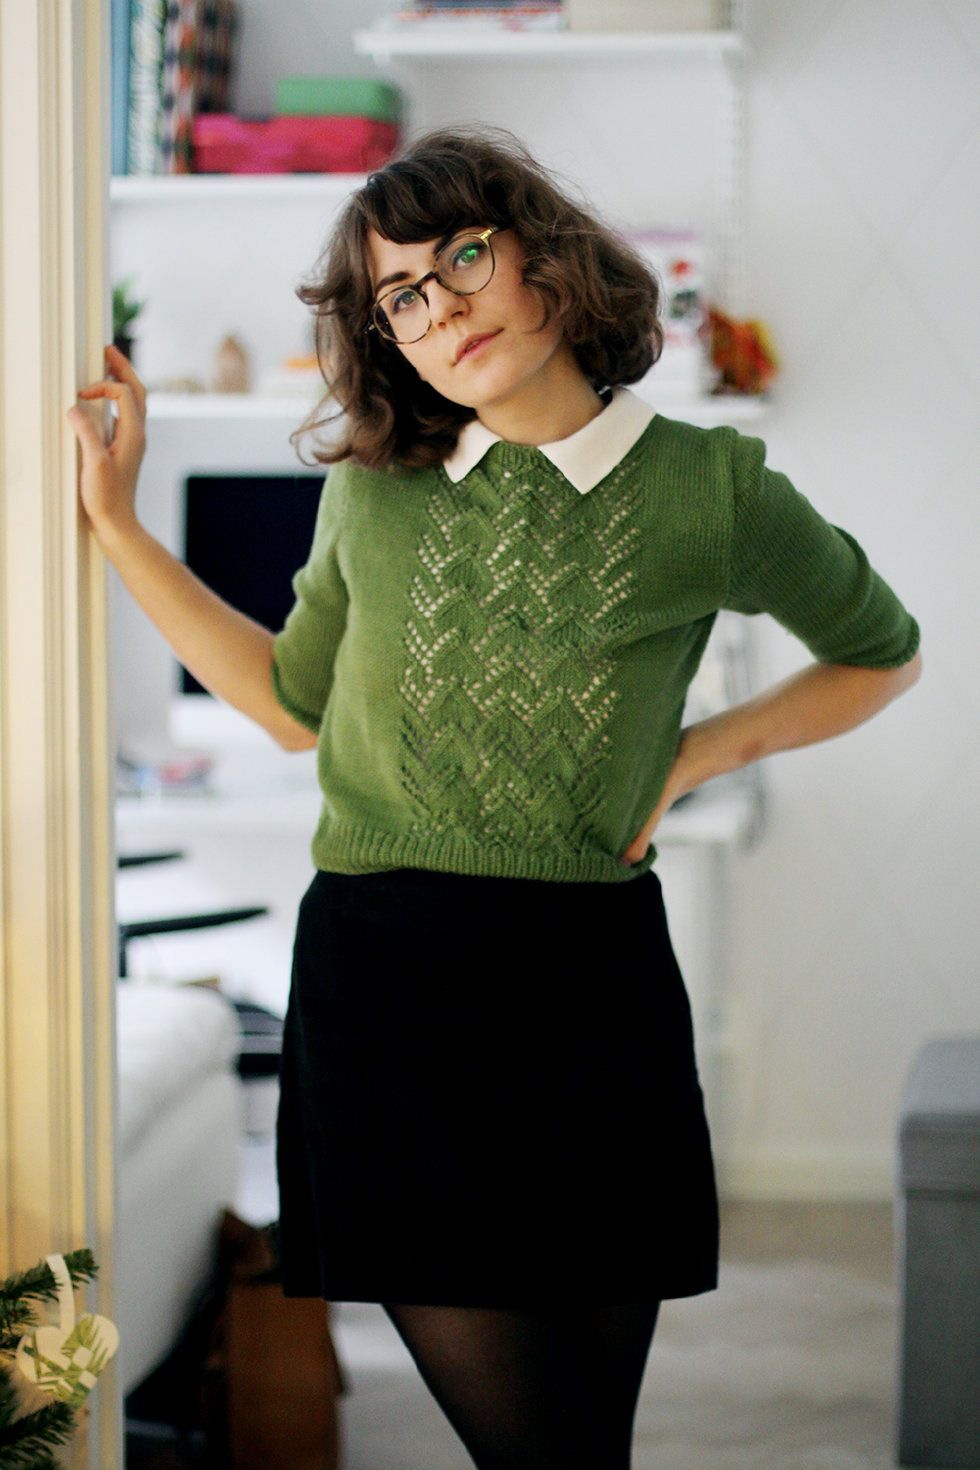 6df08ae58da73f I like the colors and the sweater with the peter pan collar shirt  underneath.